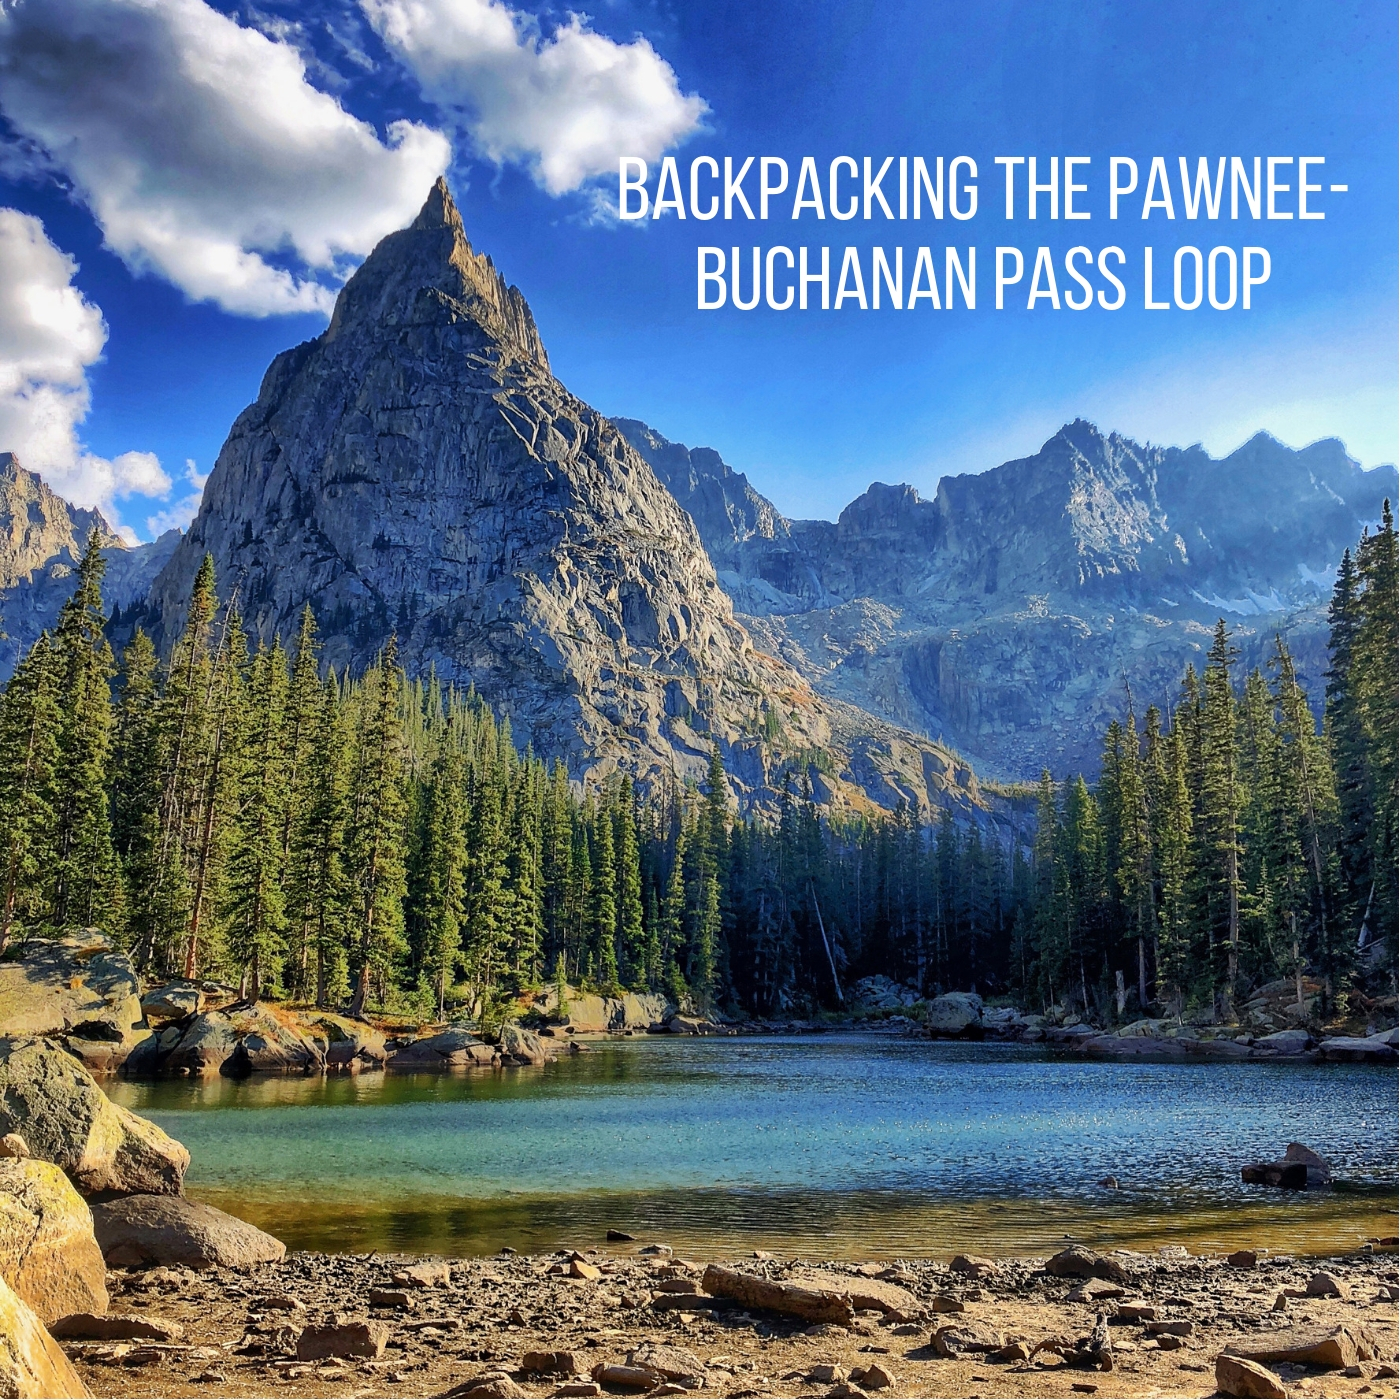 Backpacking the Pawnee-Buchanan Pass Loop